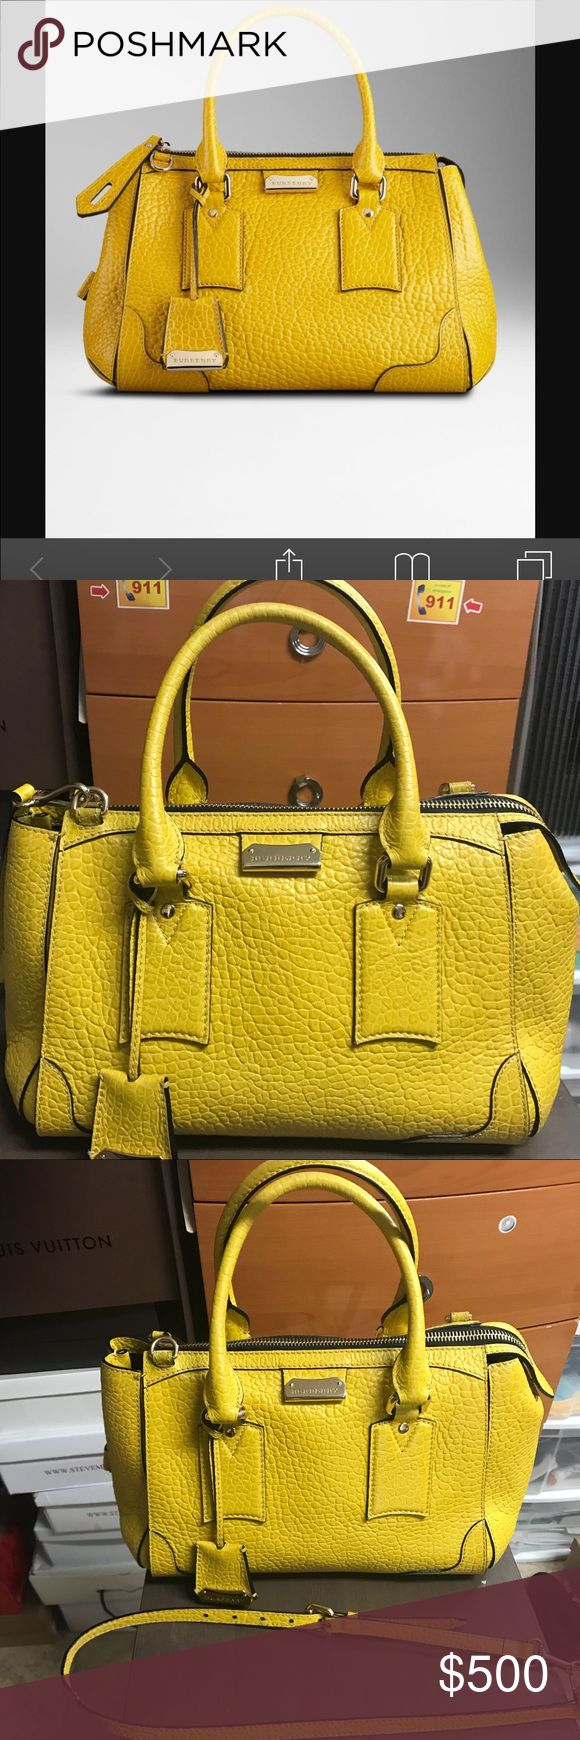 Women's Heritage Grain Leather Tote Bag Burberry yellow tote. Bags